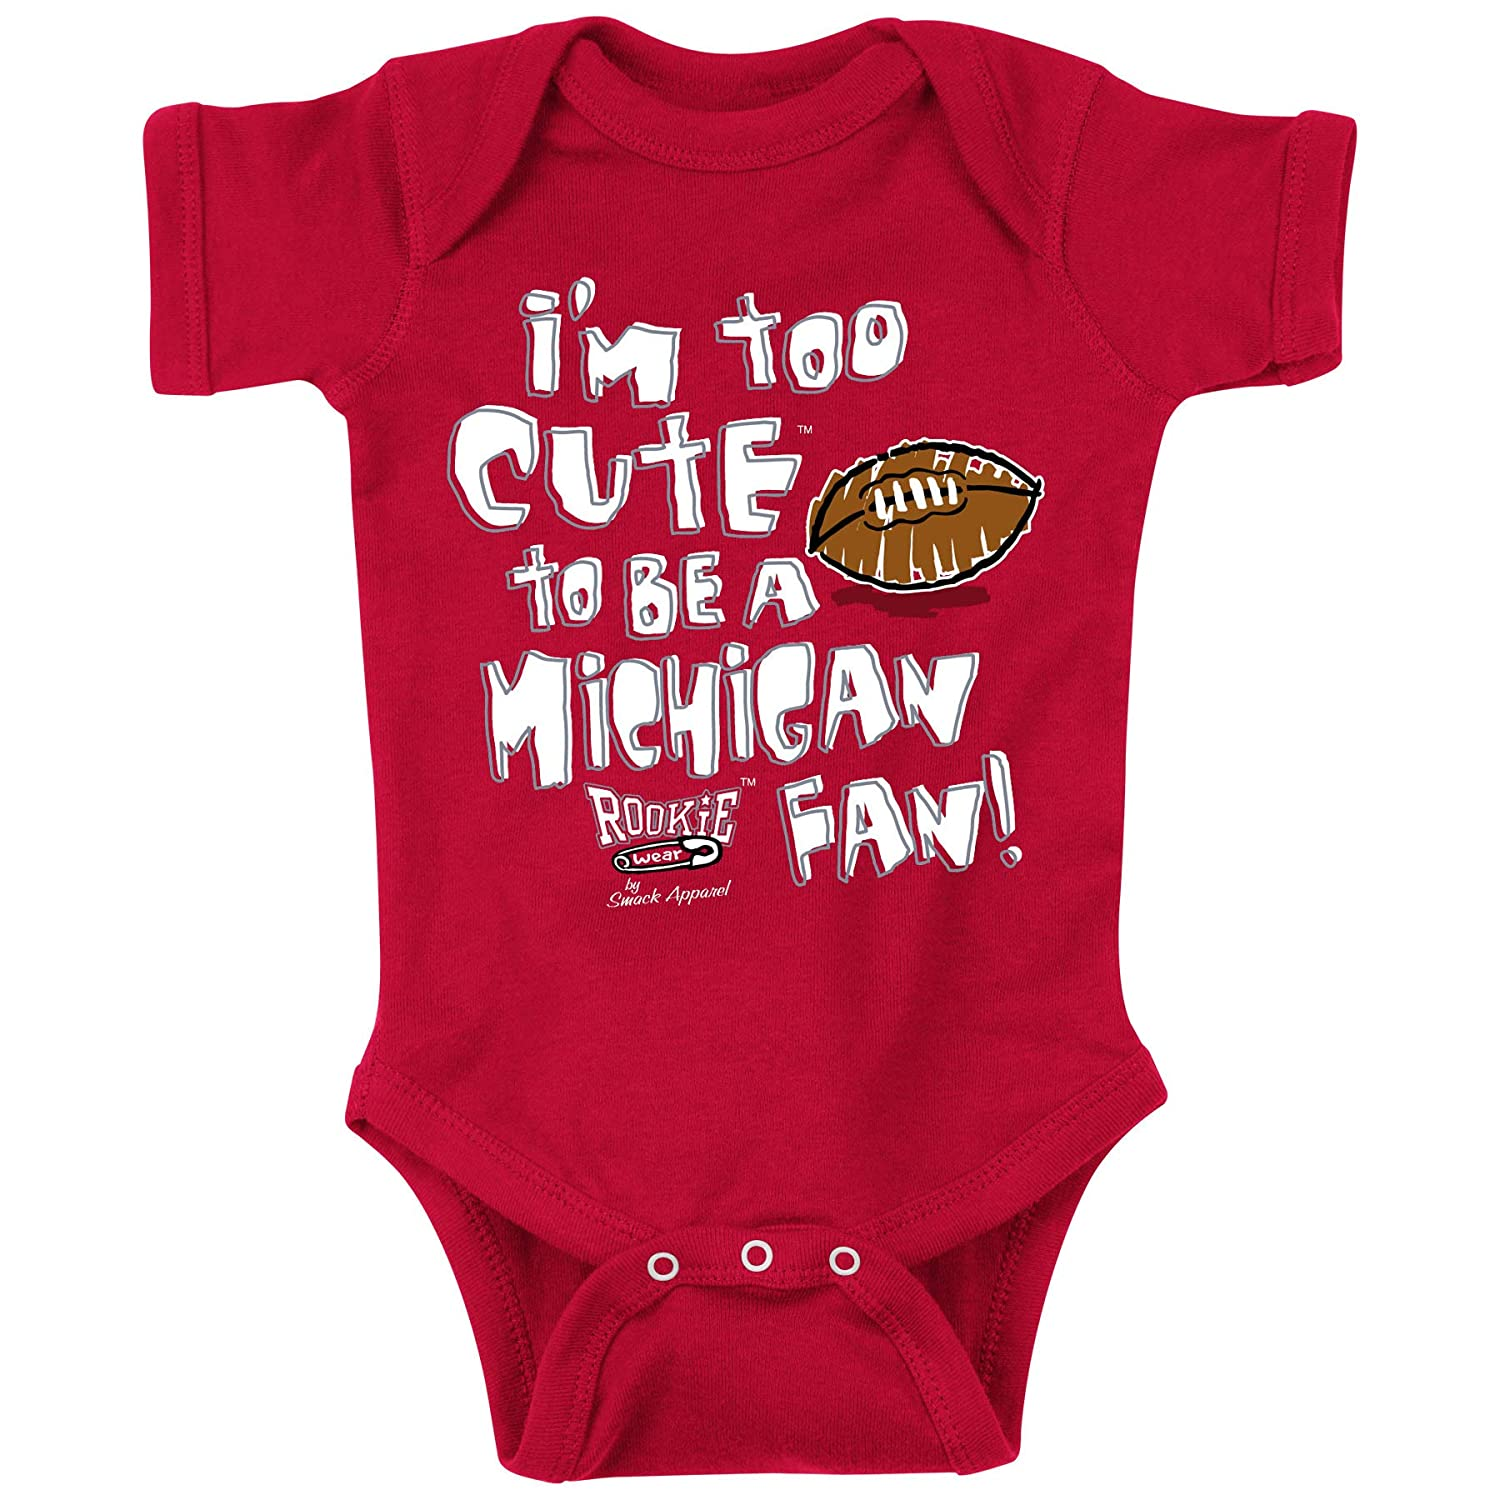 NB-18M and Toddler Tee Smack Apparel Ohio State Buckeyes Fans 2T-4T Too Cute Red Onesie